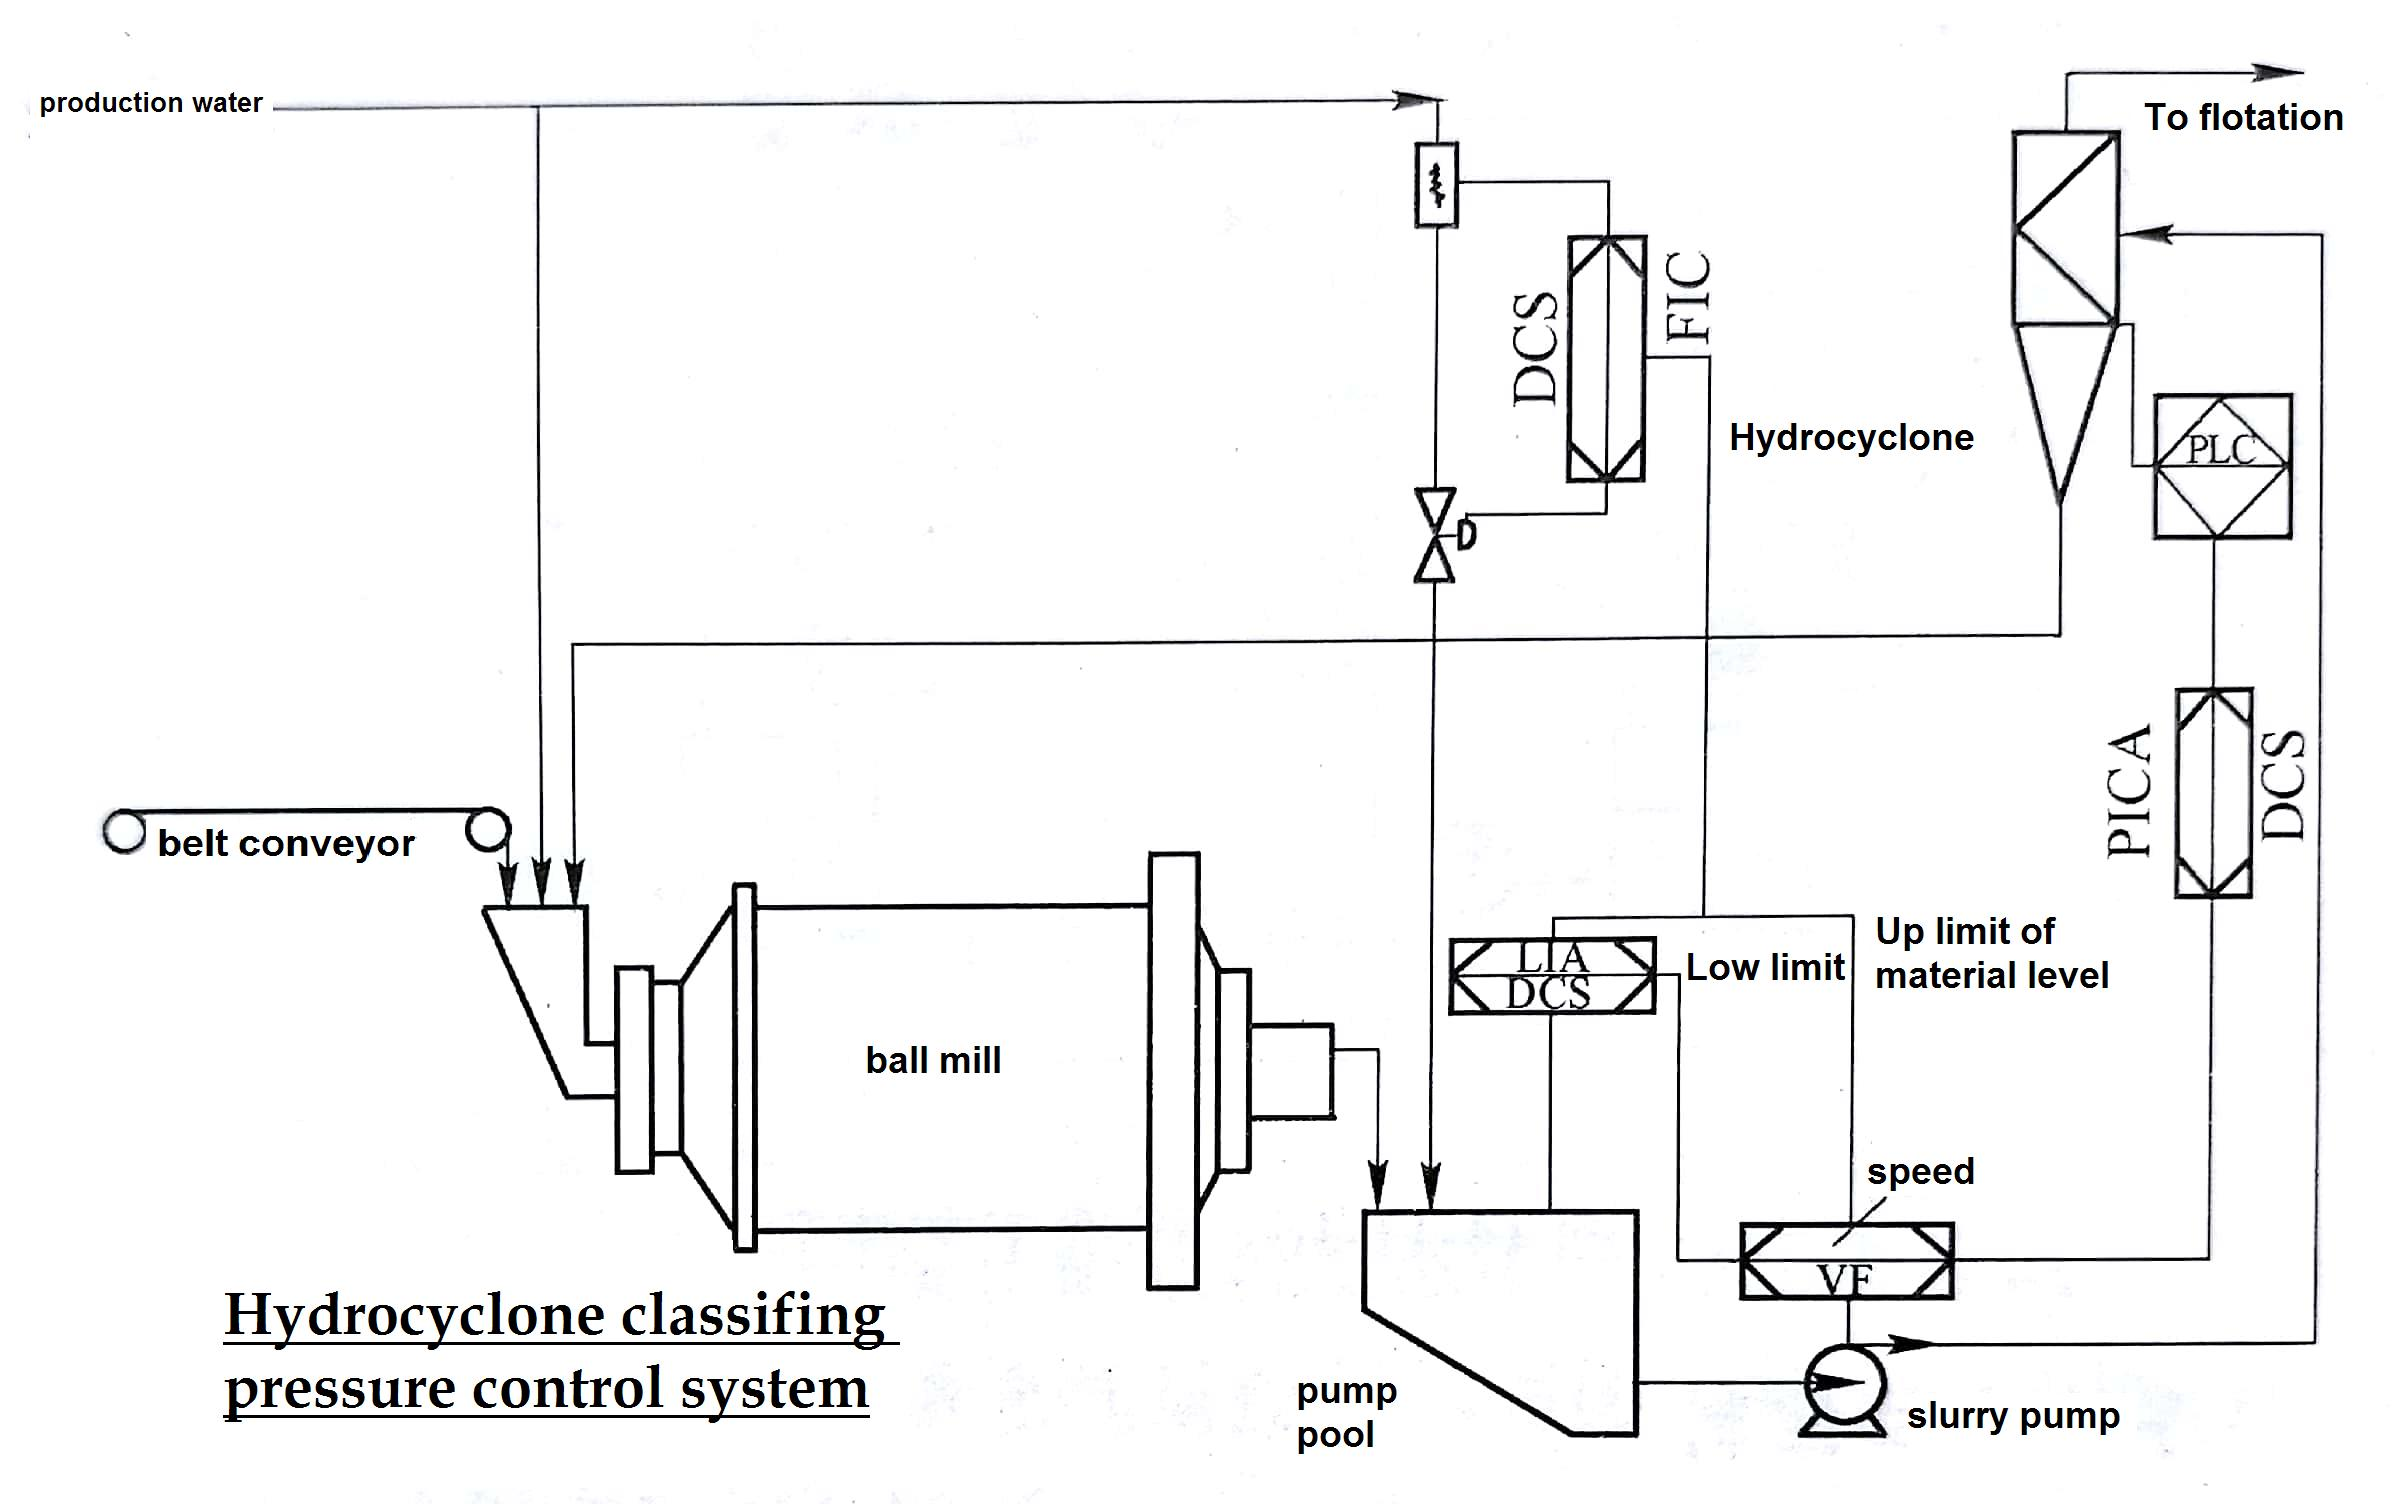 Classification pressure control of hydrocyclone